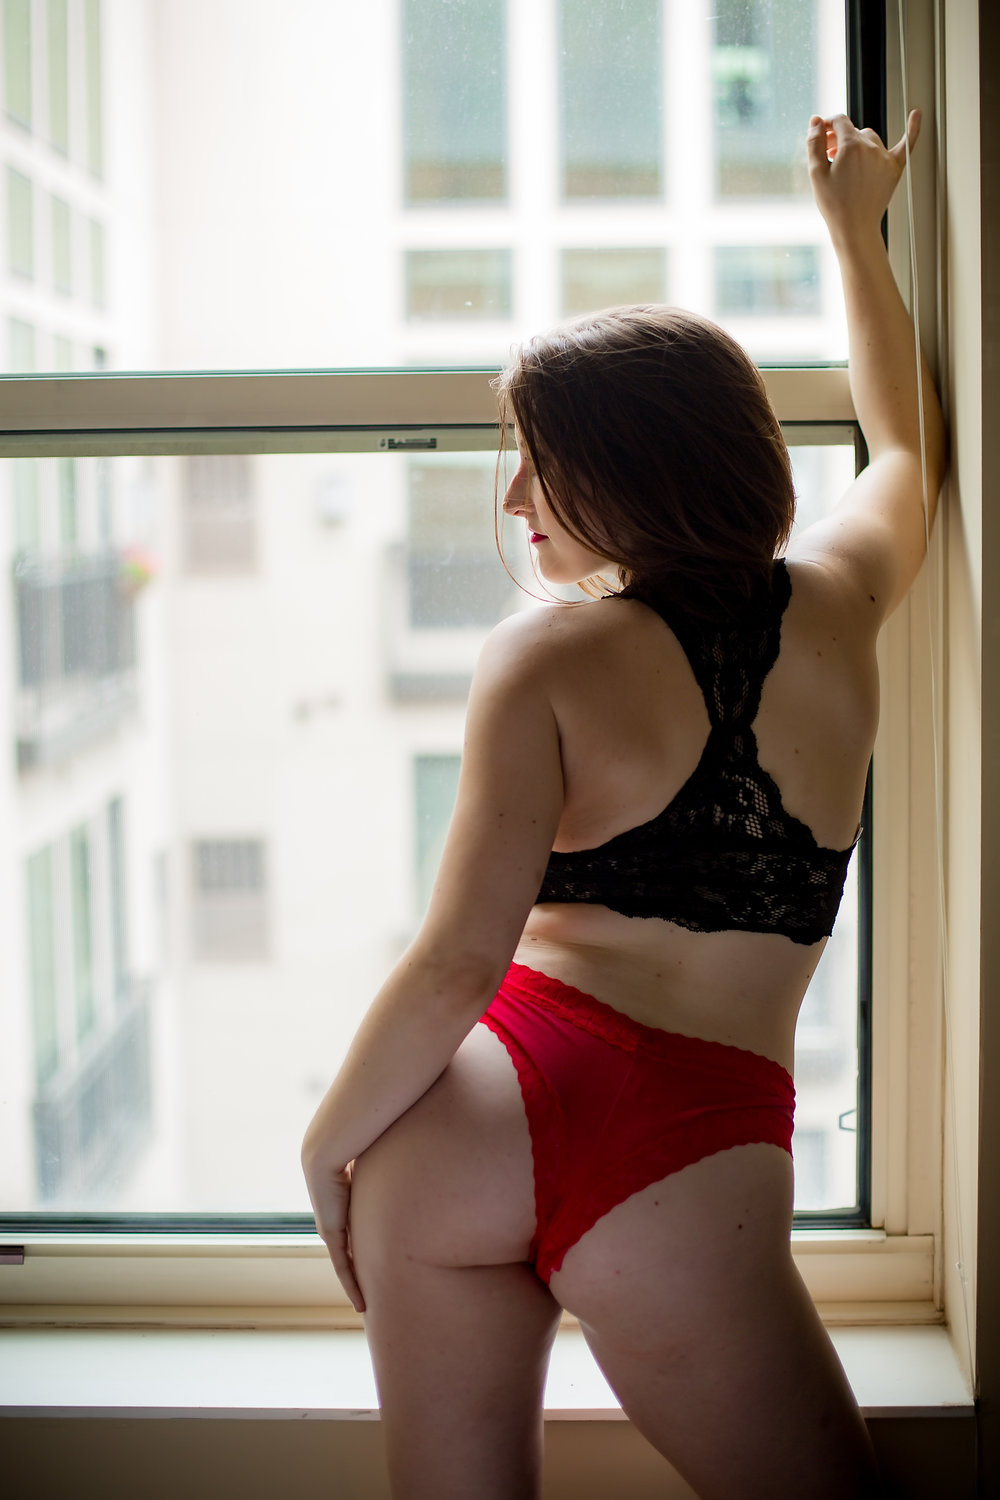 Check out the rest of Ivory's set by backing at  http://patreon.com/hellapositive !